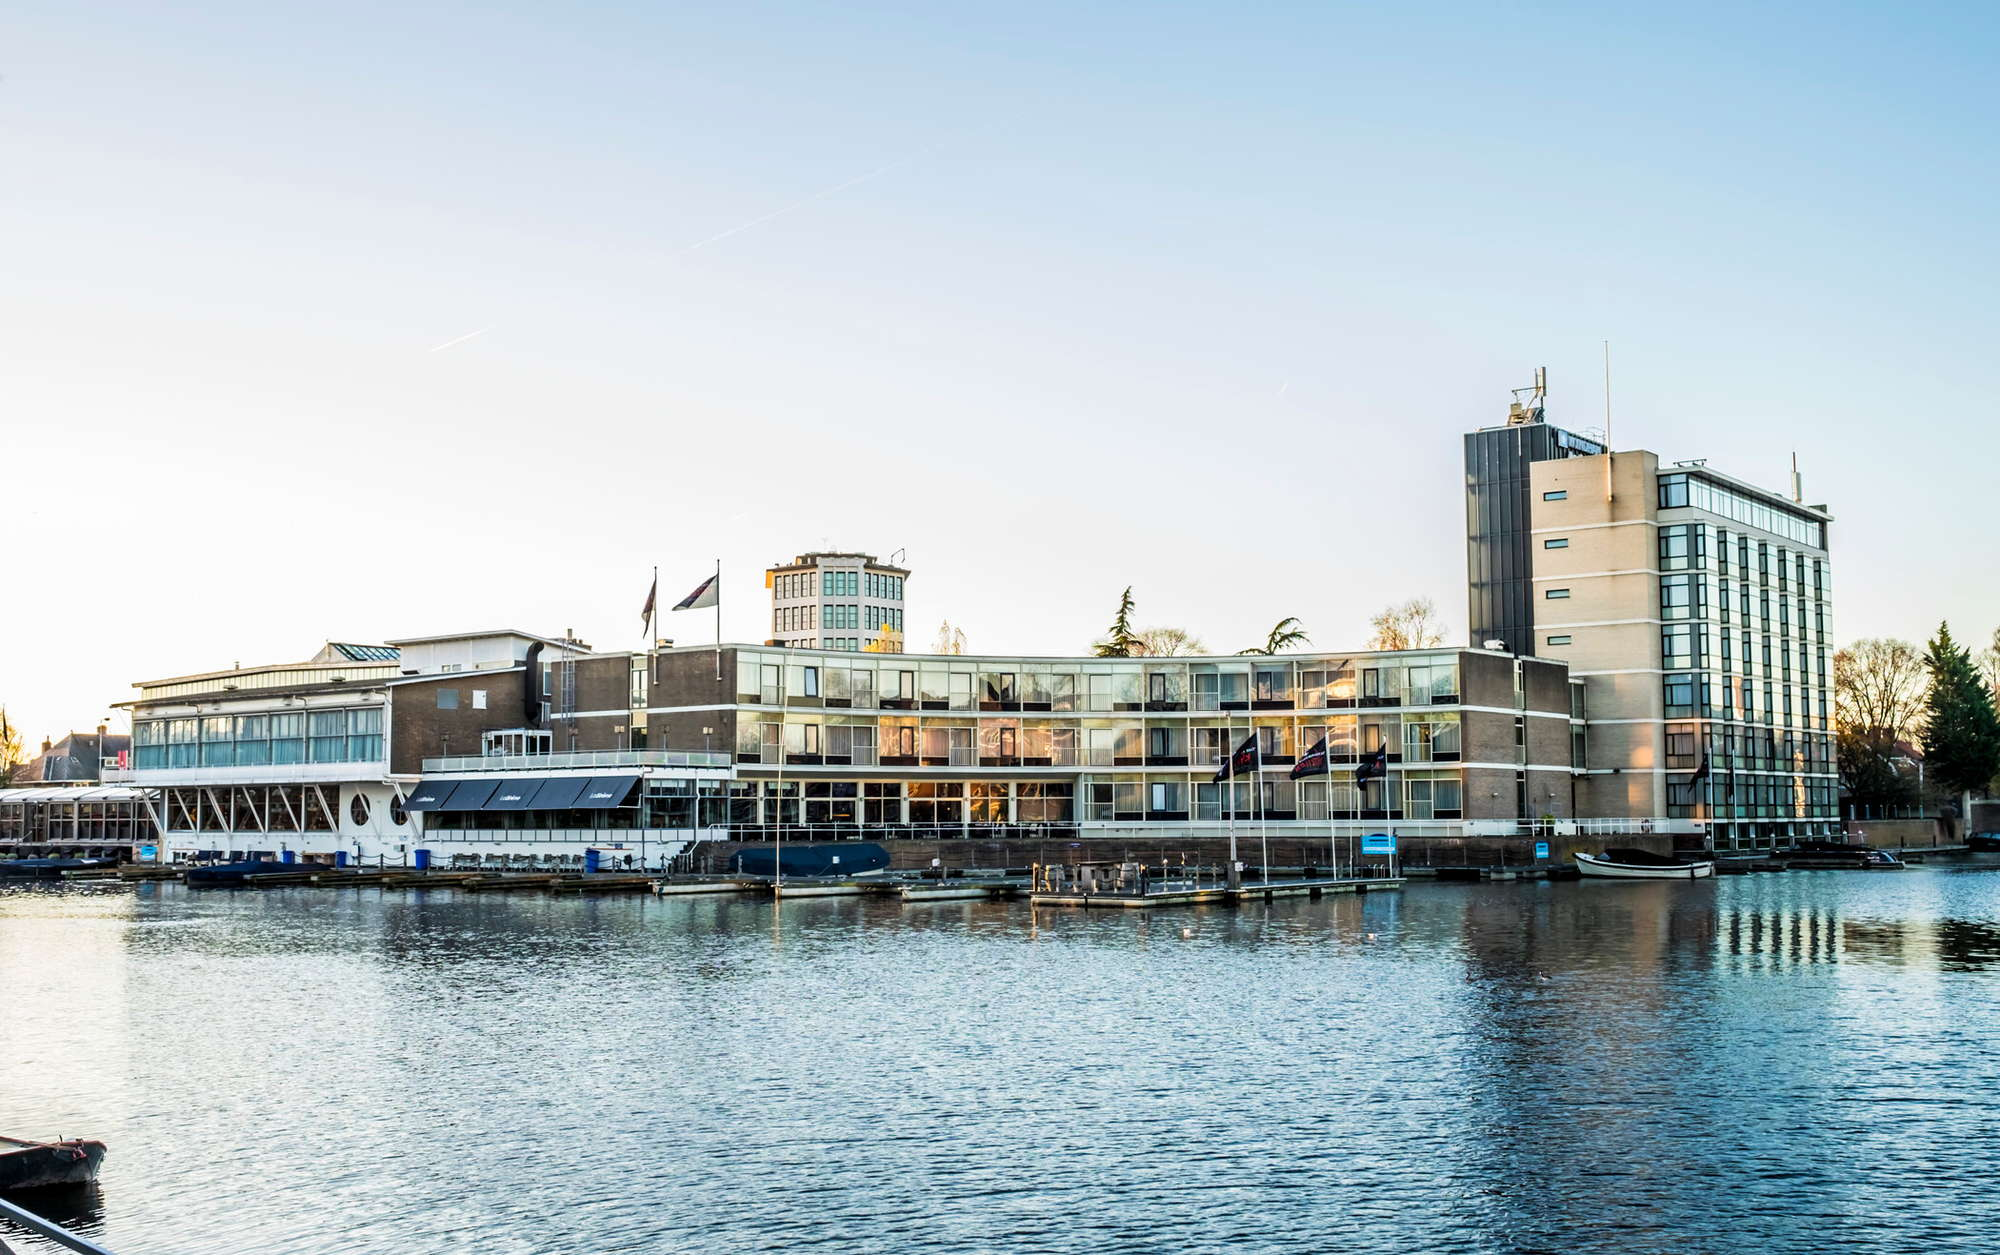 The Apollo Hotel Amsterdam Expert Review Fodor S Travel